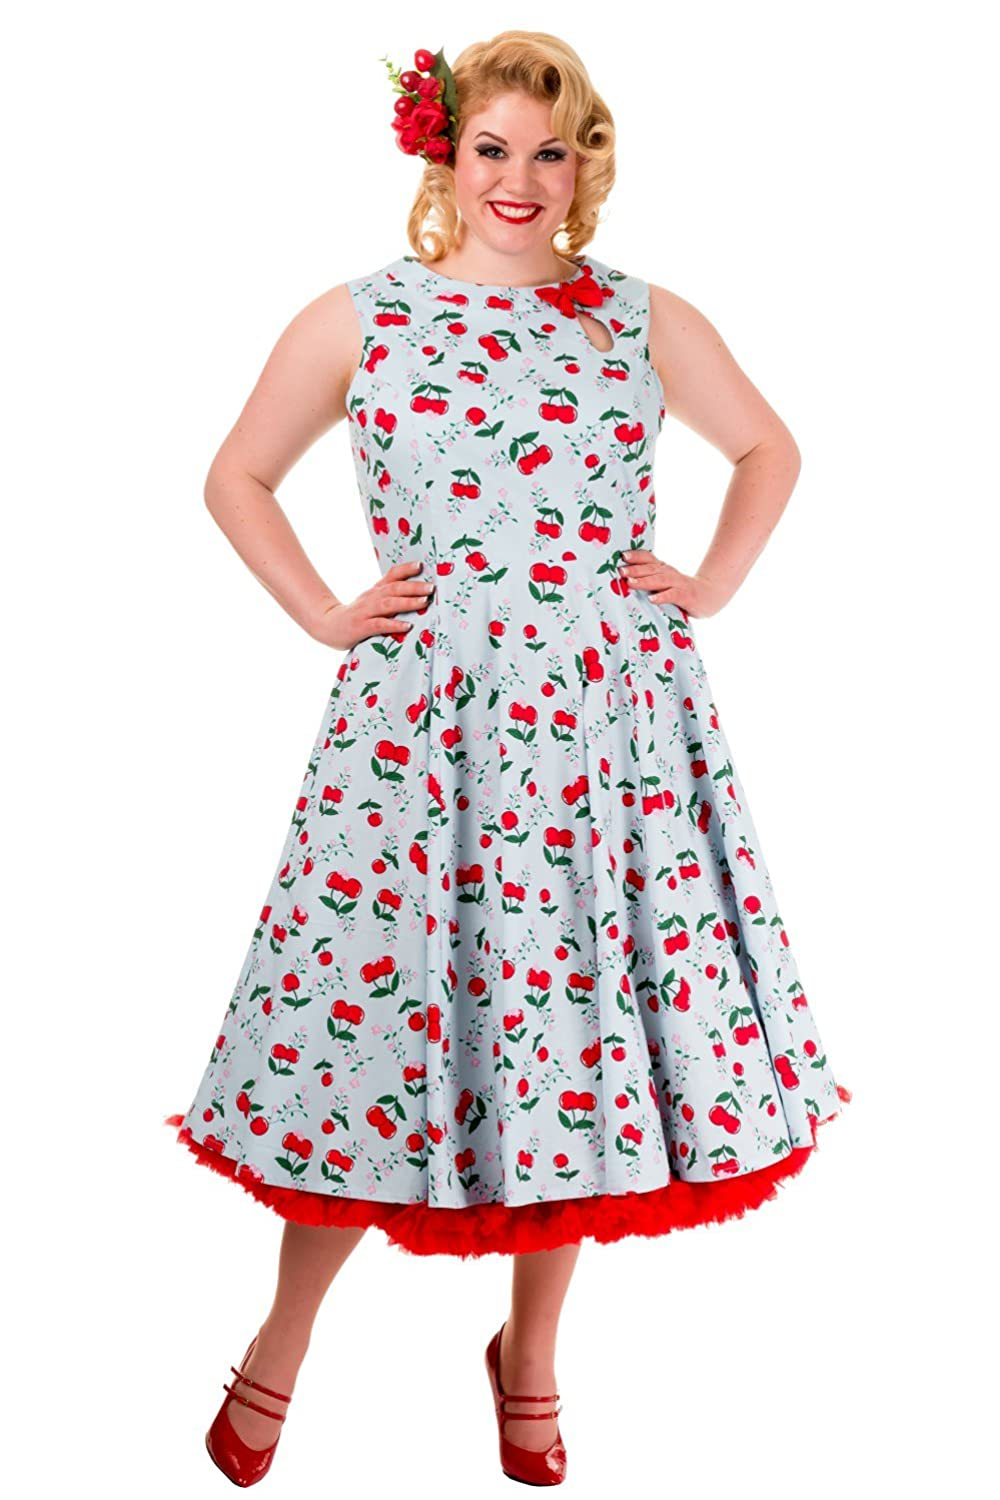 Banned Blindside Sleeveless Vintage Cherry Print Dress - Plus Size